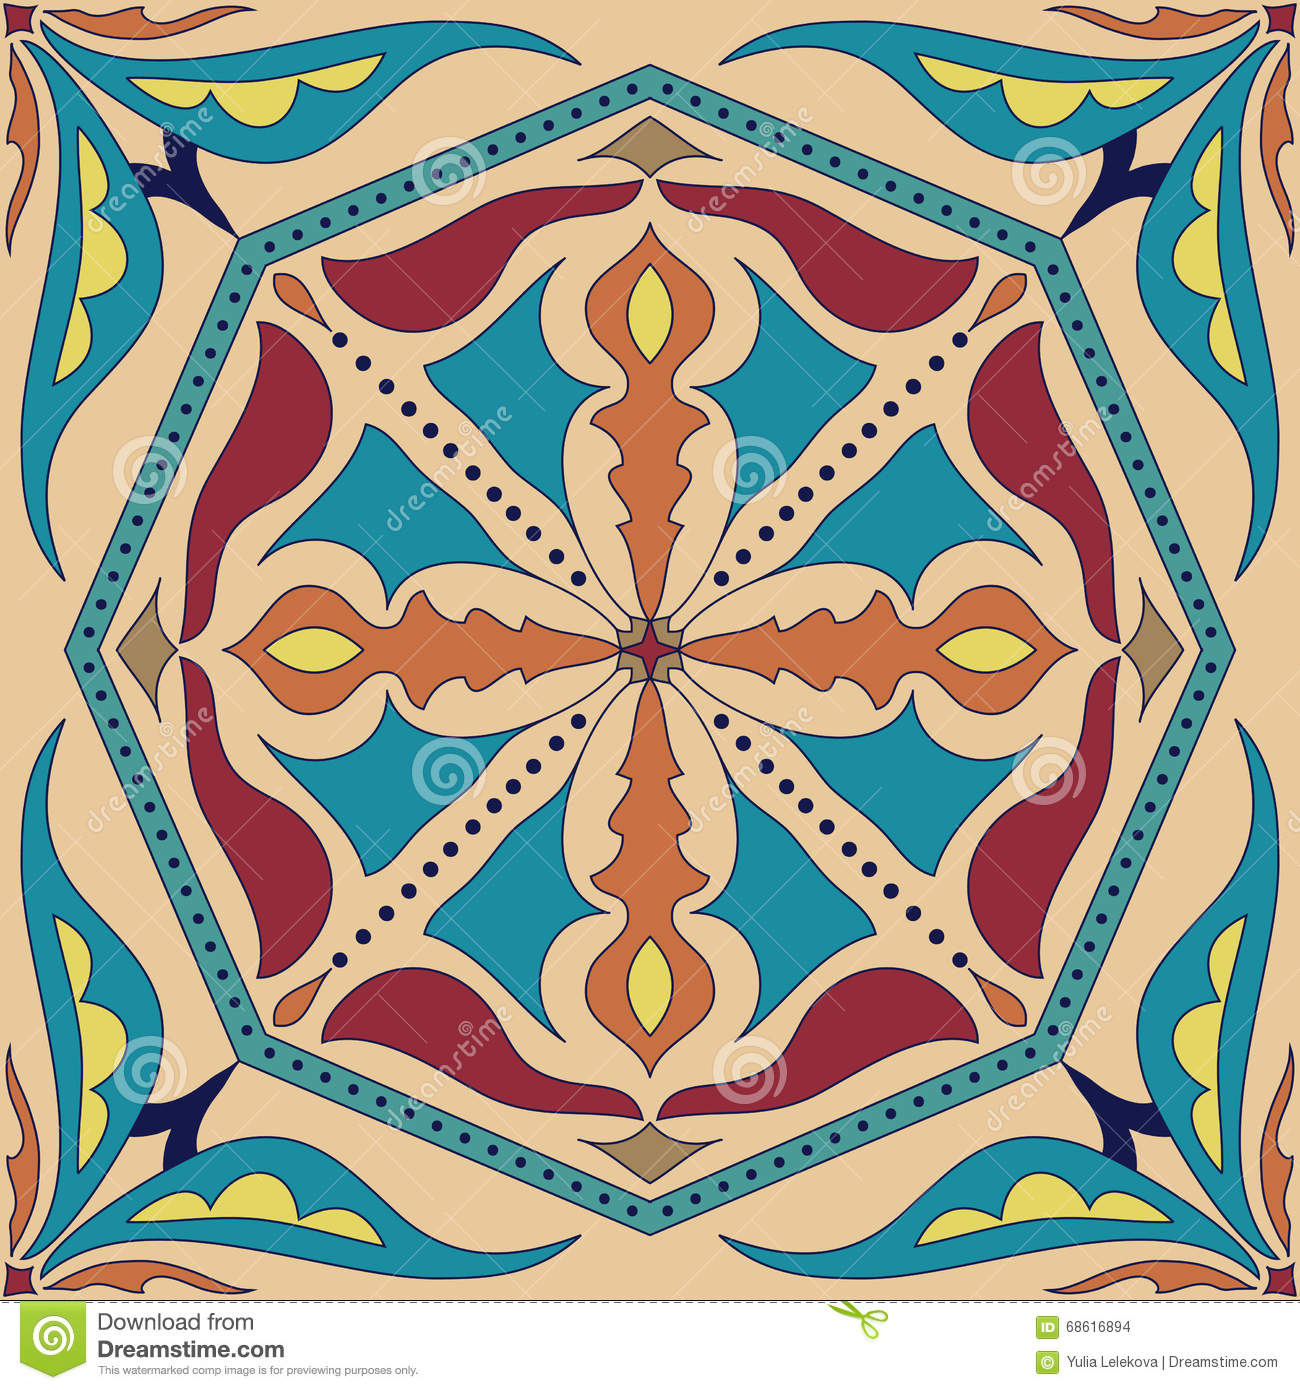 Colouring in for adults examples - Colouring Book For Adults Examples Vector Square Mandala Pattern As Example For Coloring Book For